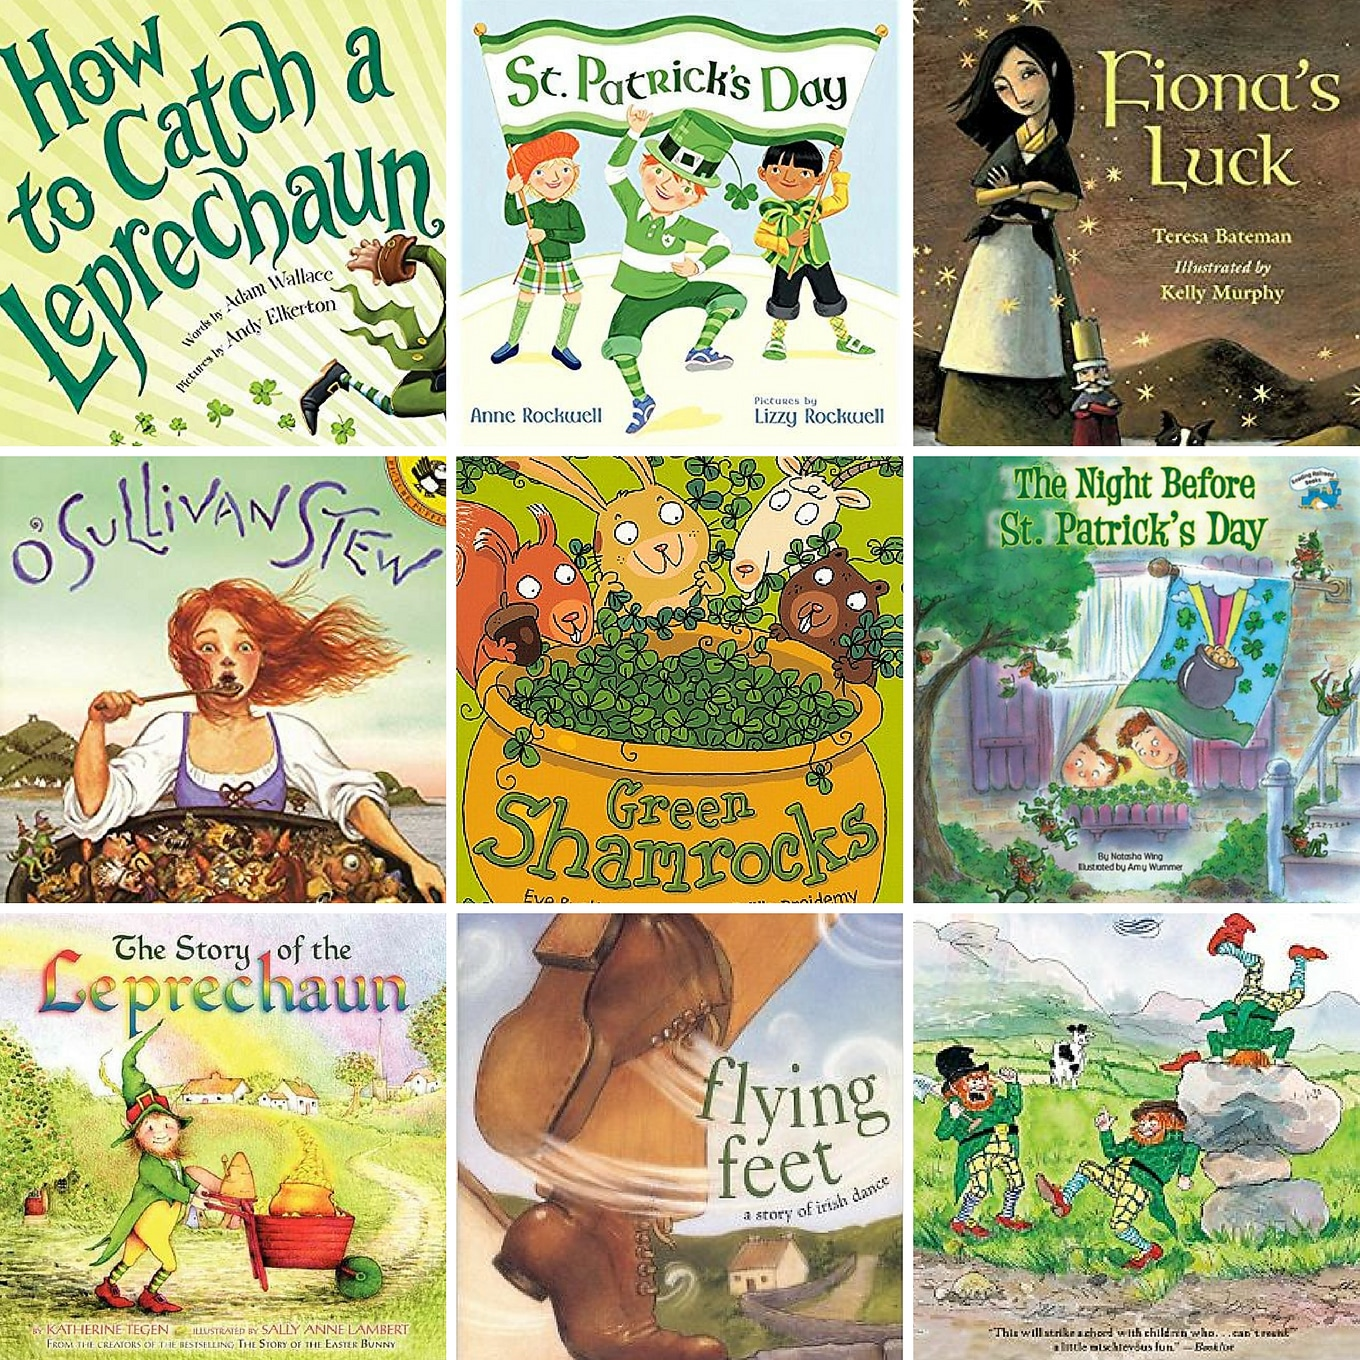 The Best St. Patrick's Day Books for Kids